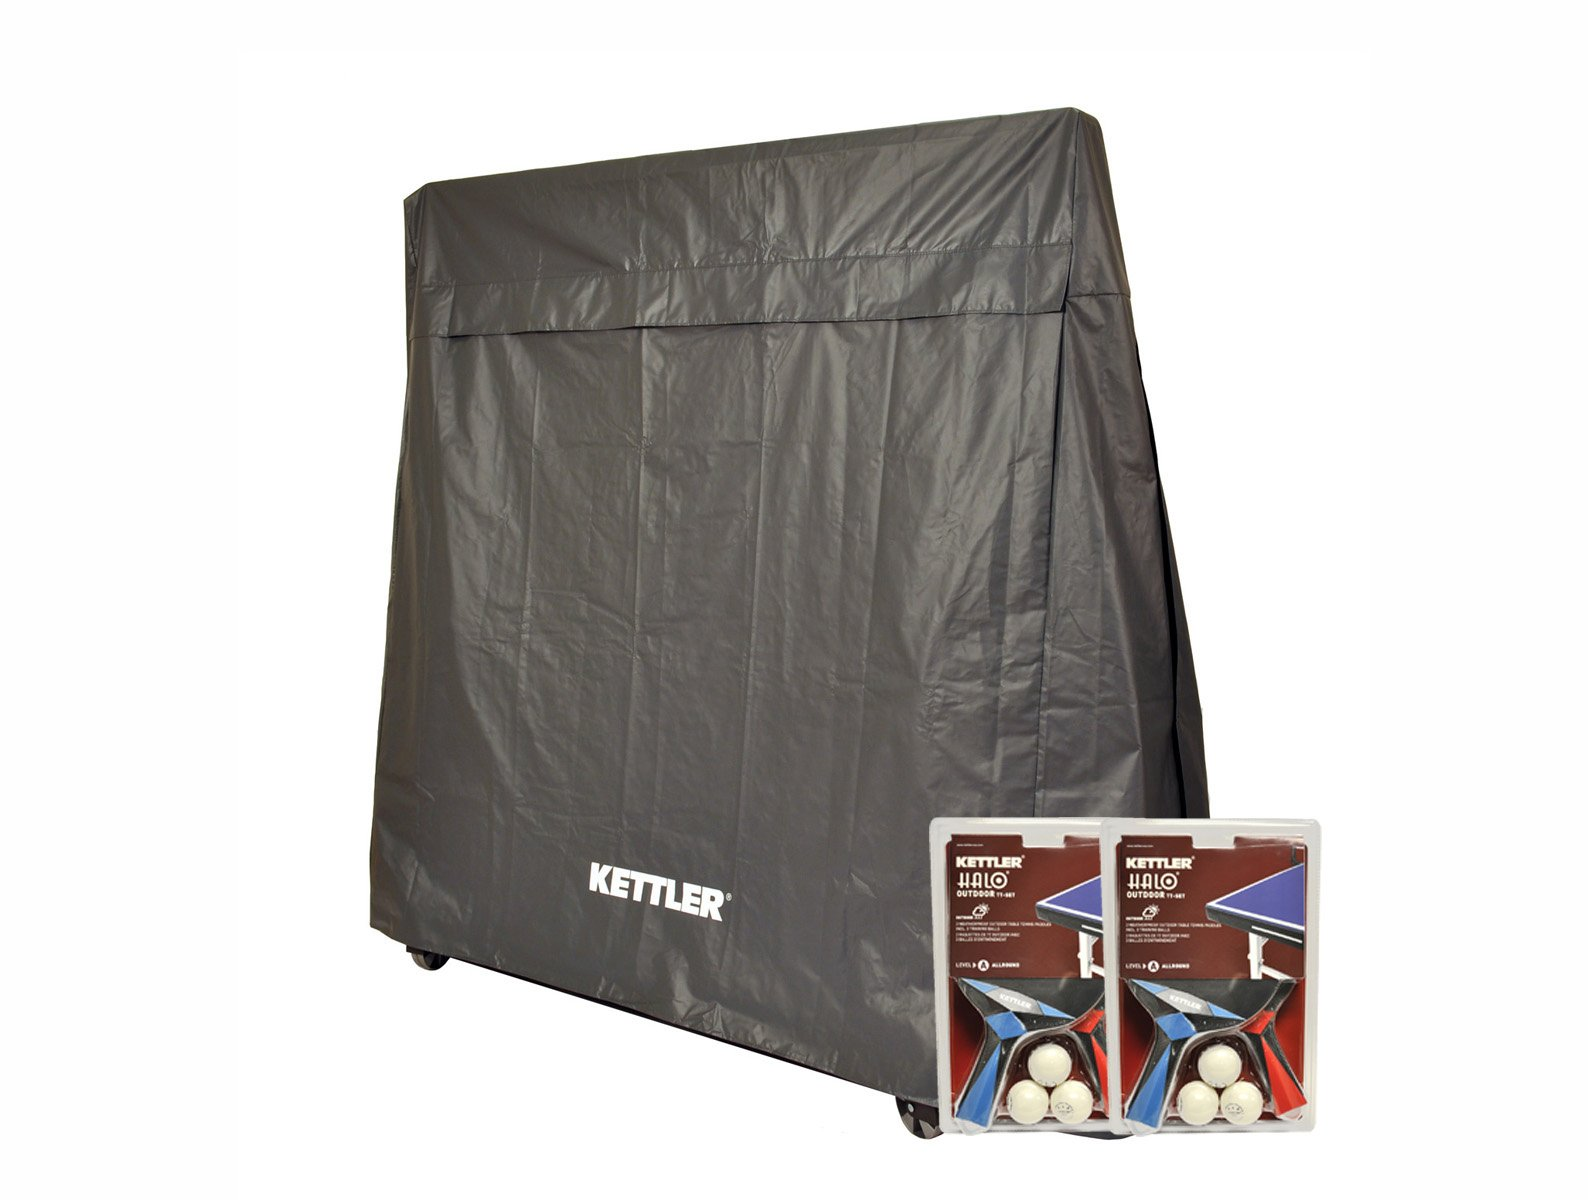 KETTLER Table Tennis Accessory Bundle